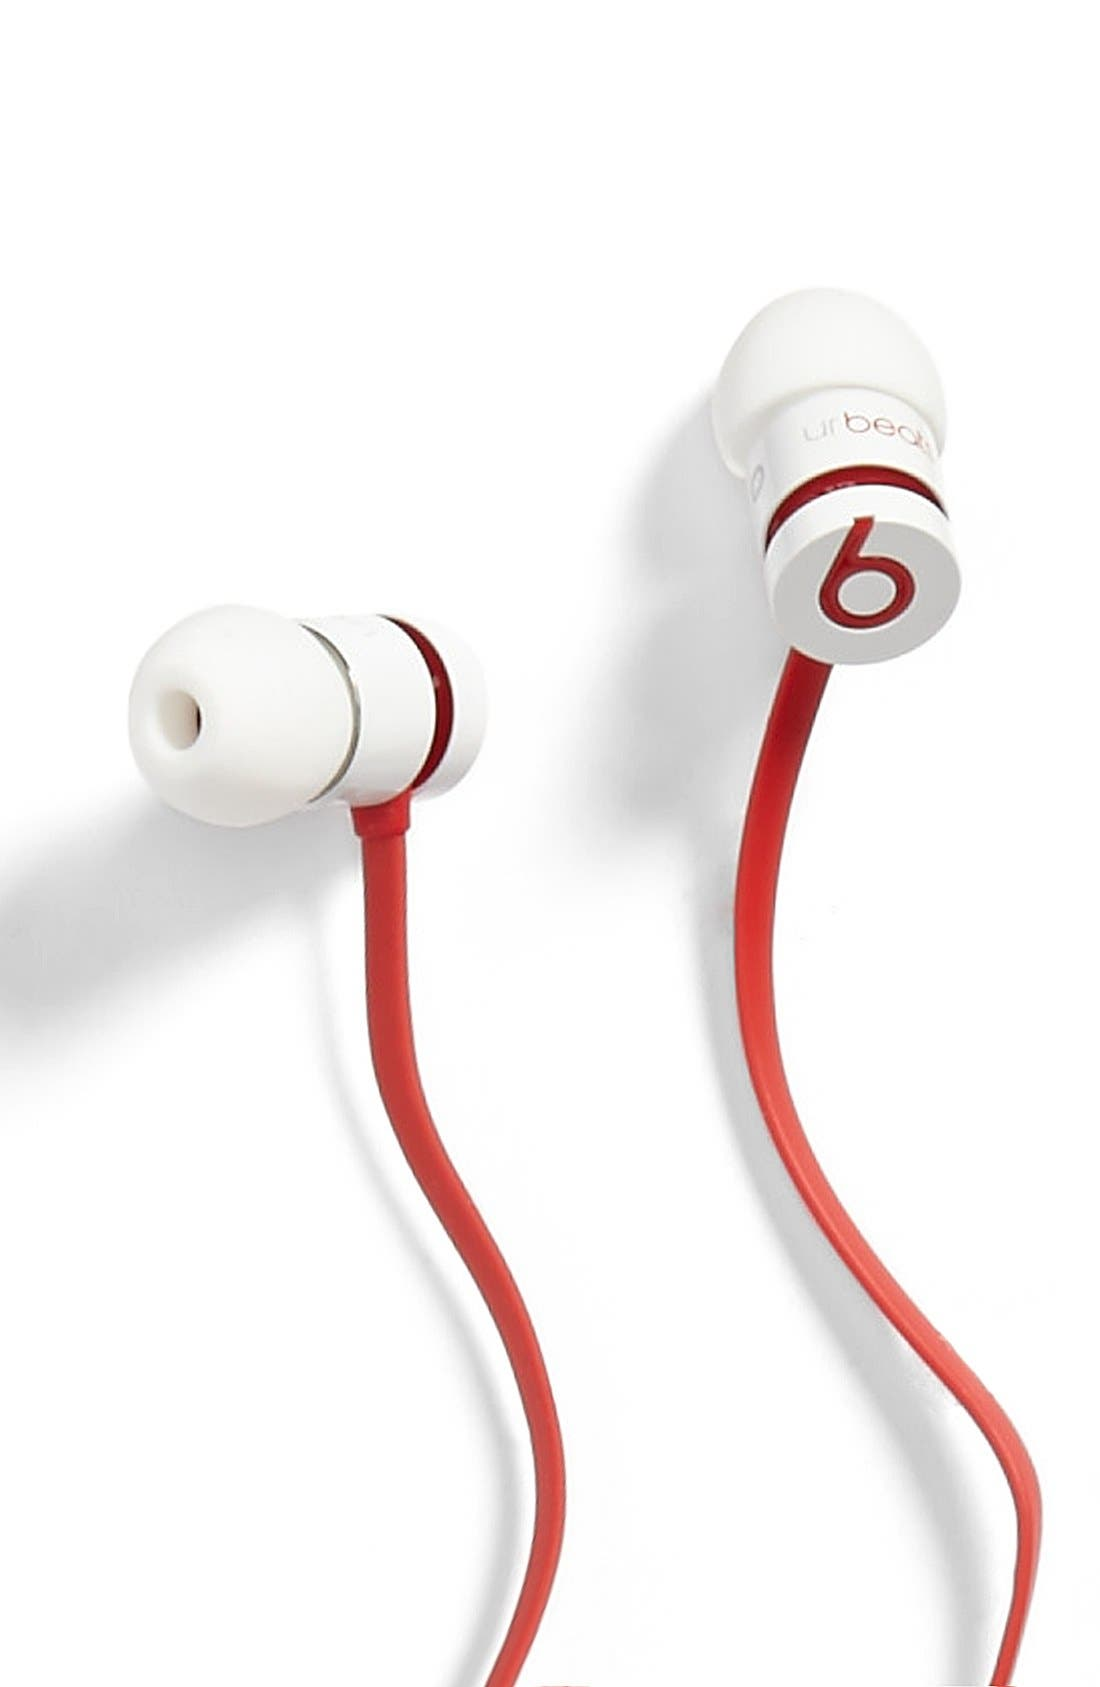 Main Image - Beats by Dr. Dre™ 'urBeats™' In-Ear Noise Isolation Headphones